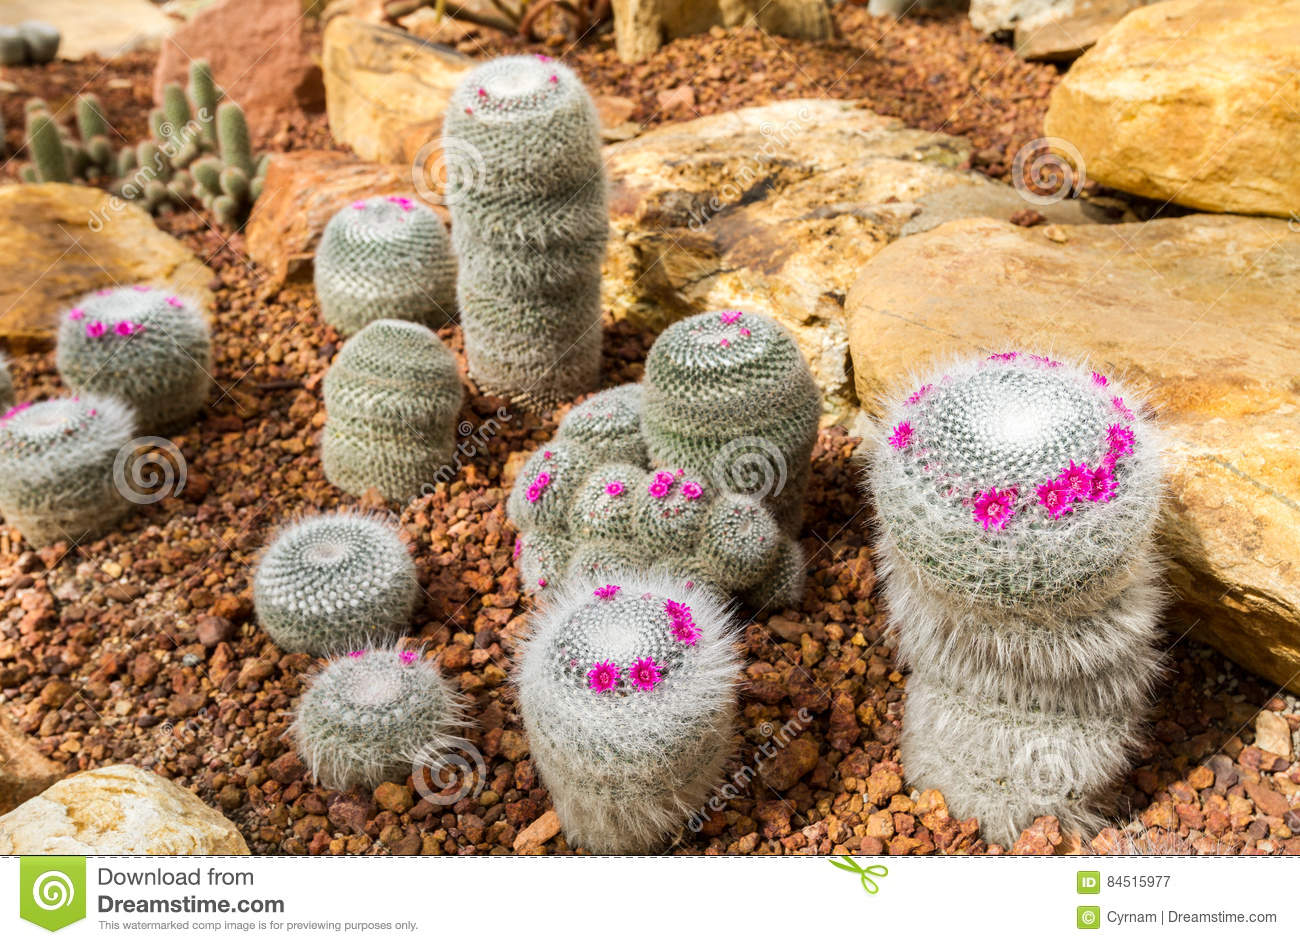 Beautiful cactus with little purple flower in rock garden, background and texture